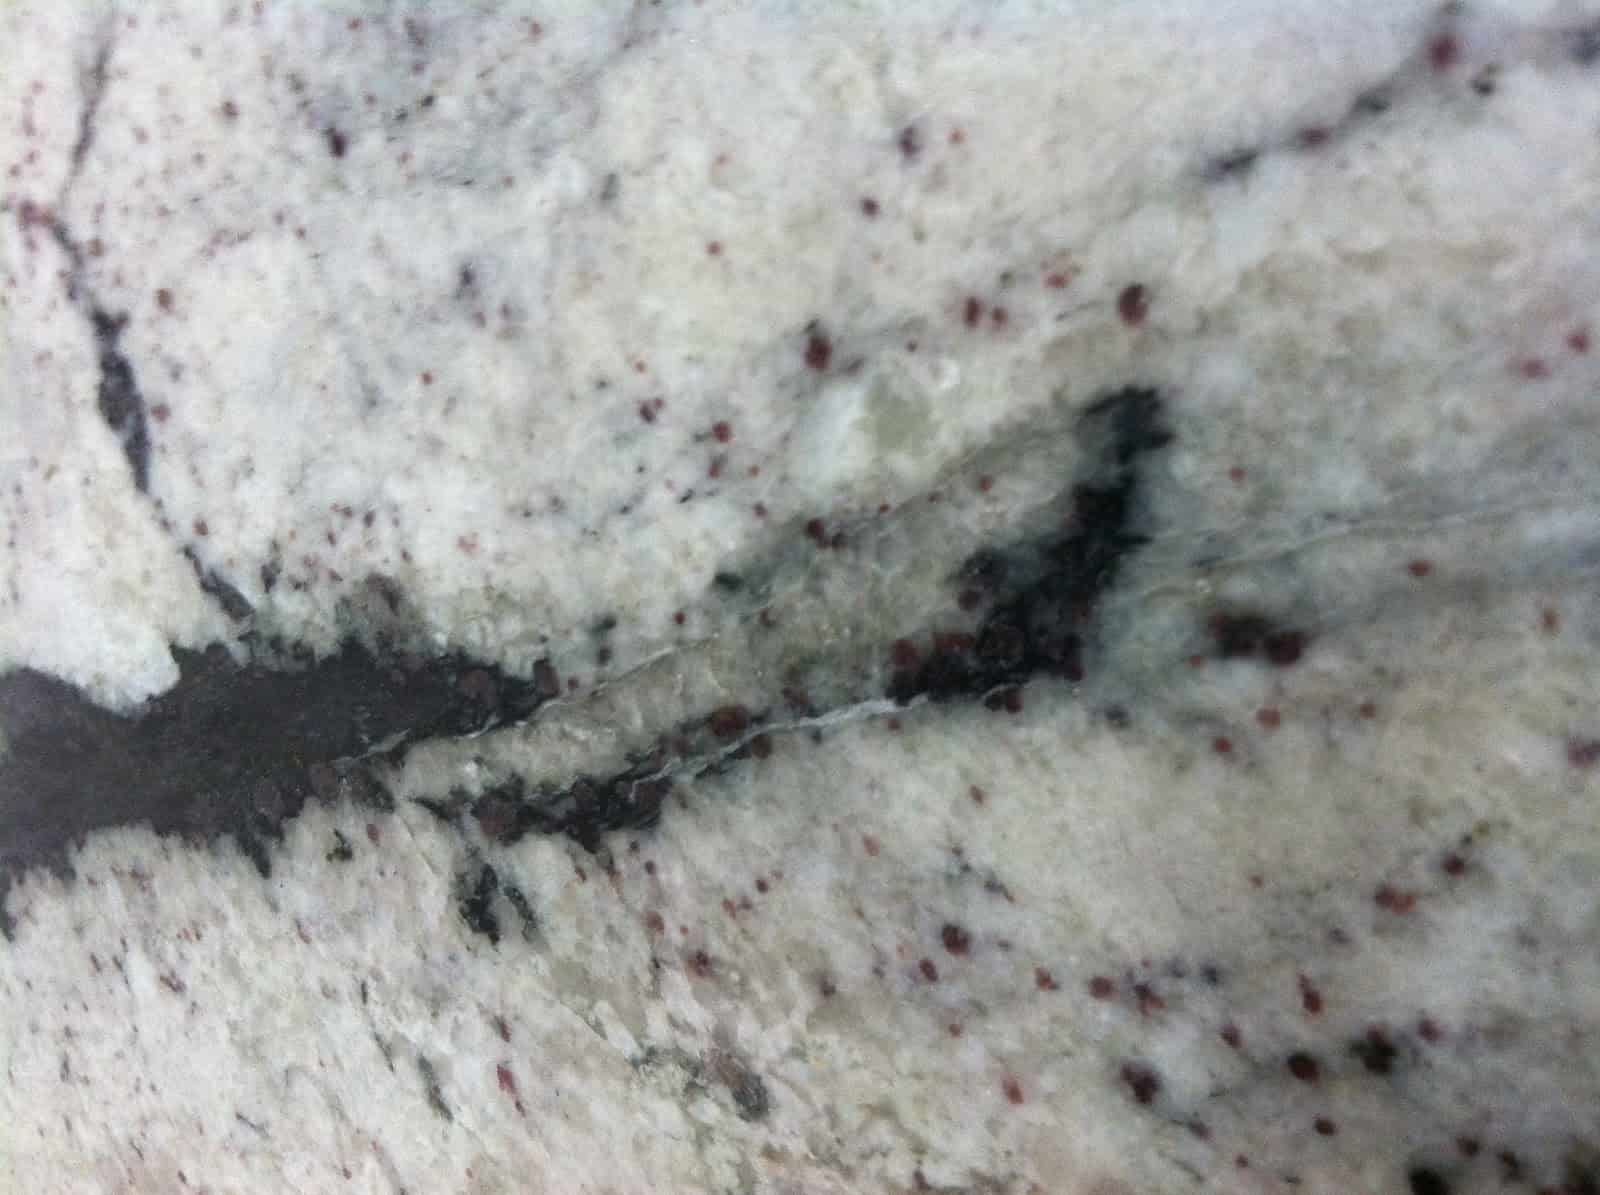 Chipped Quartz Countertop Repair How To Repair Fissures Cracks And Chips In Countertops